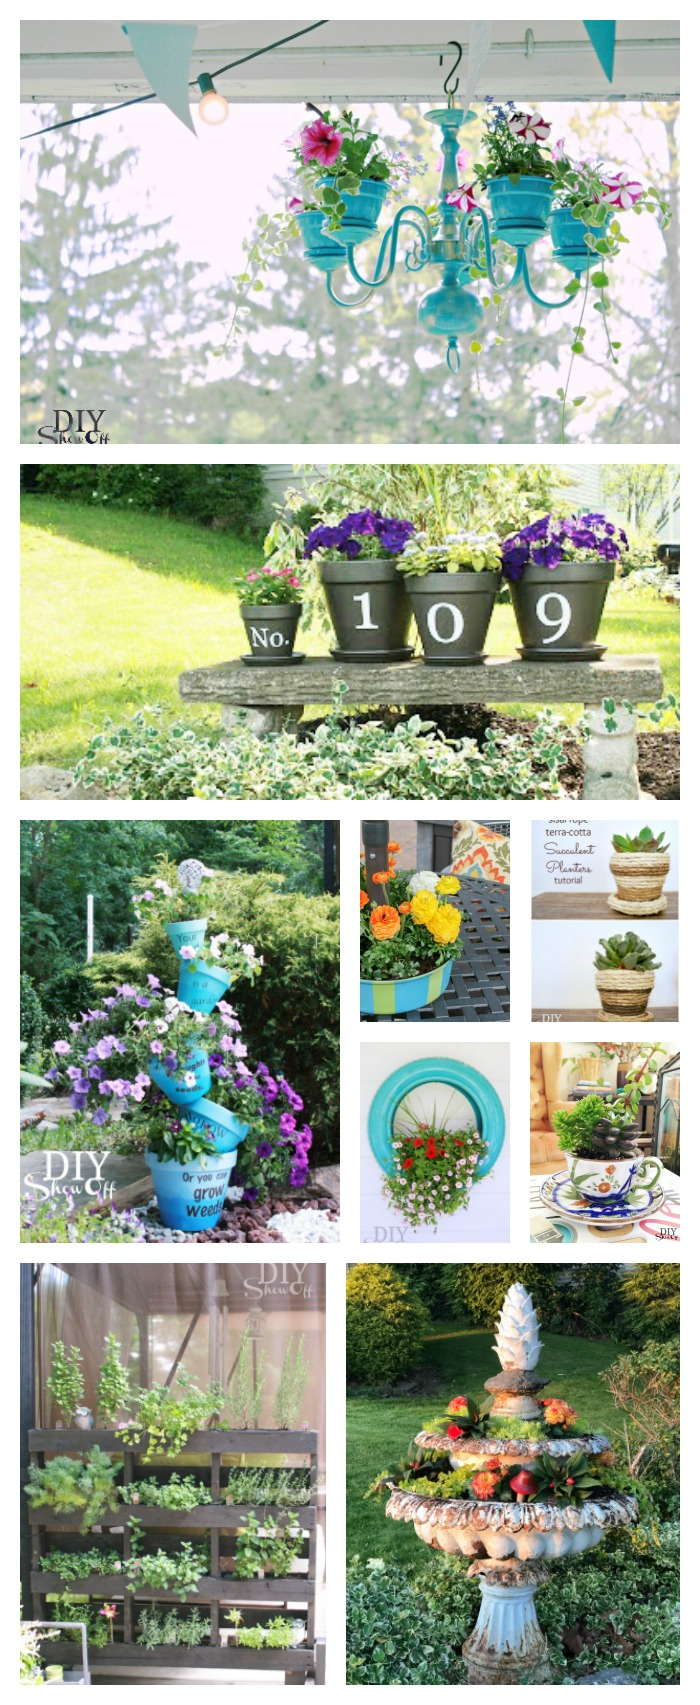 creative planter ideas @diyshowoff